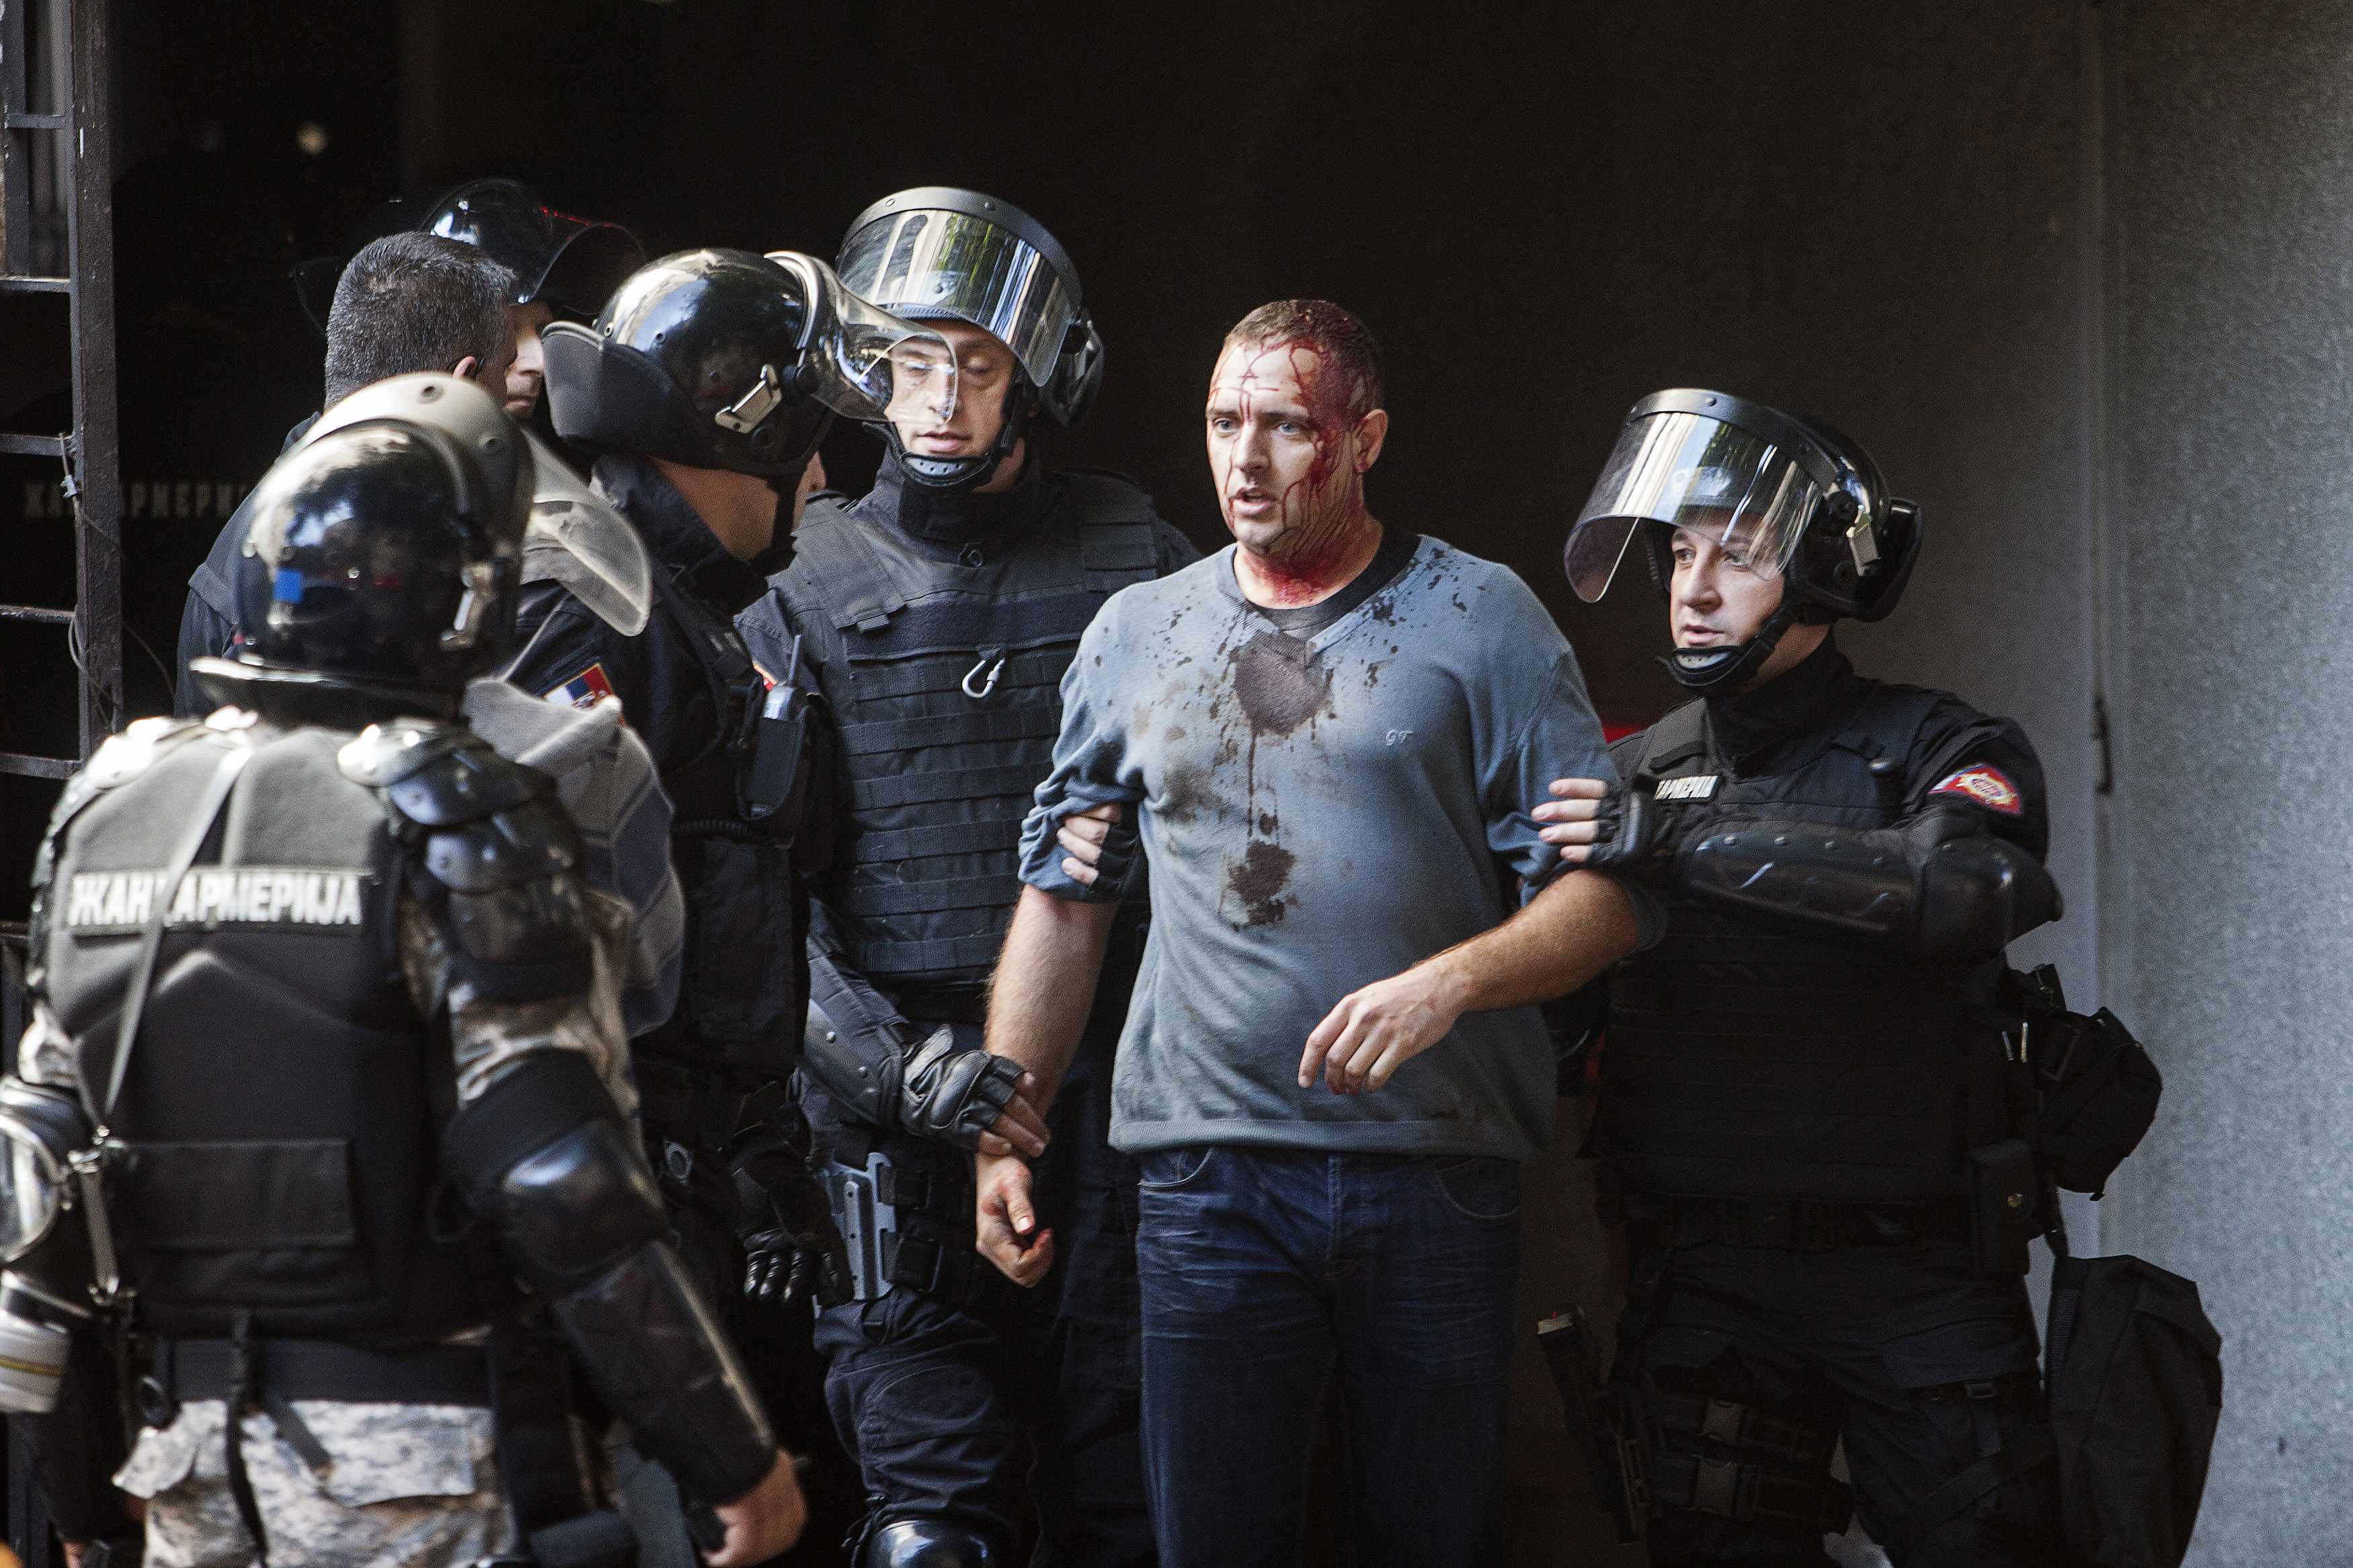 Riot police detain an anti gay activist during a Pride march in Belgrade, September 28, 2014. Gay rights activists in Serbia held their first Pride march in four years on Sunday, walking through Belgrade streets emptied of traffic and pedestrians by a mas